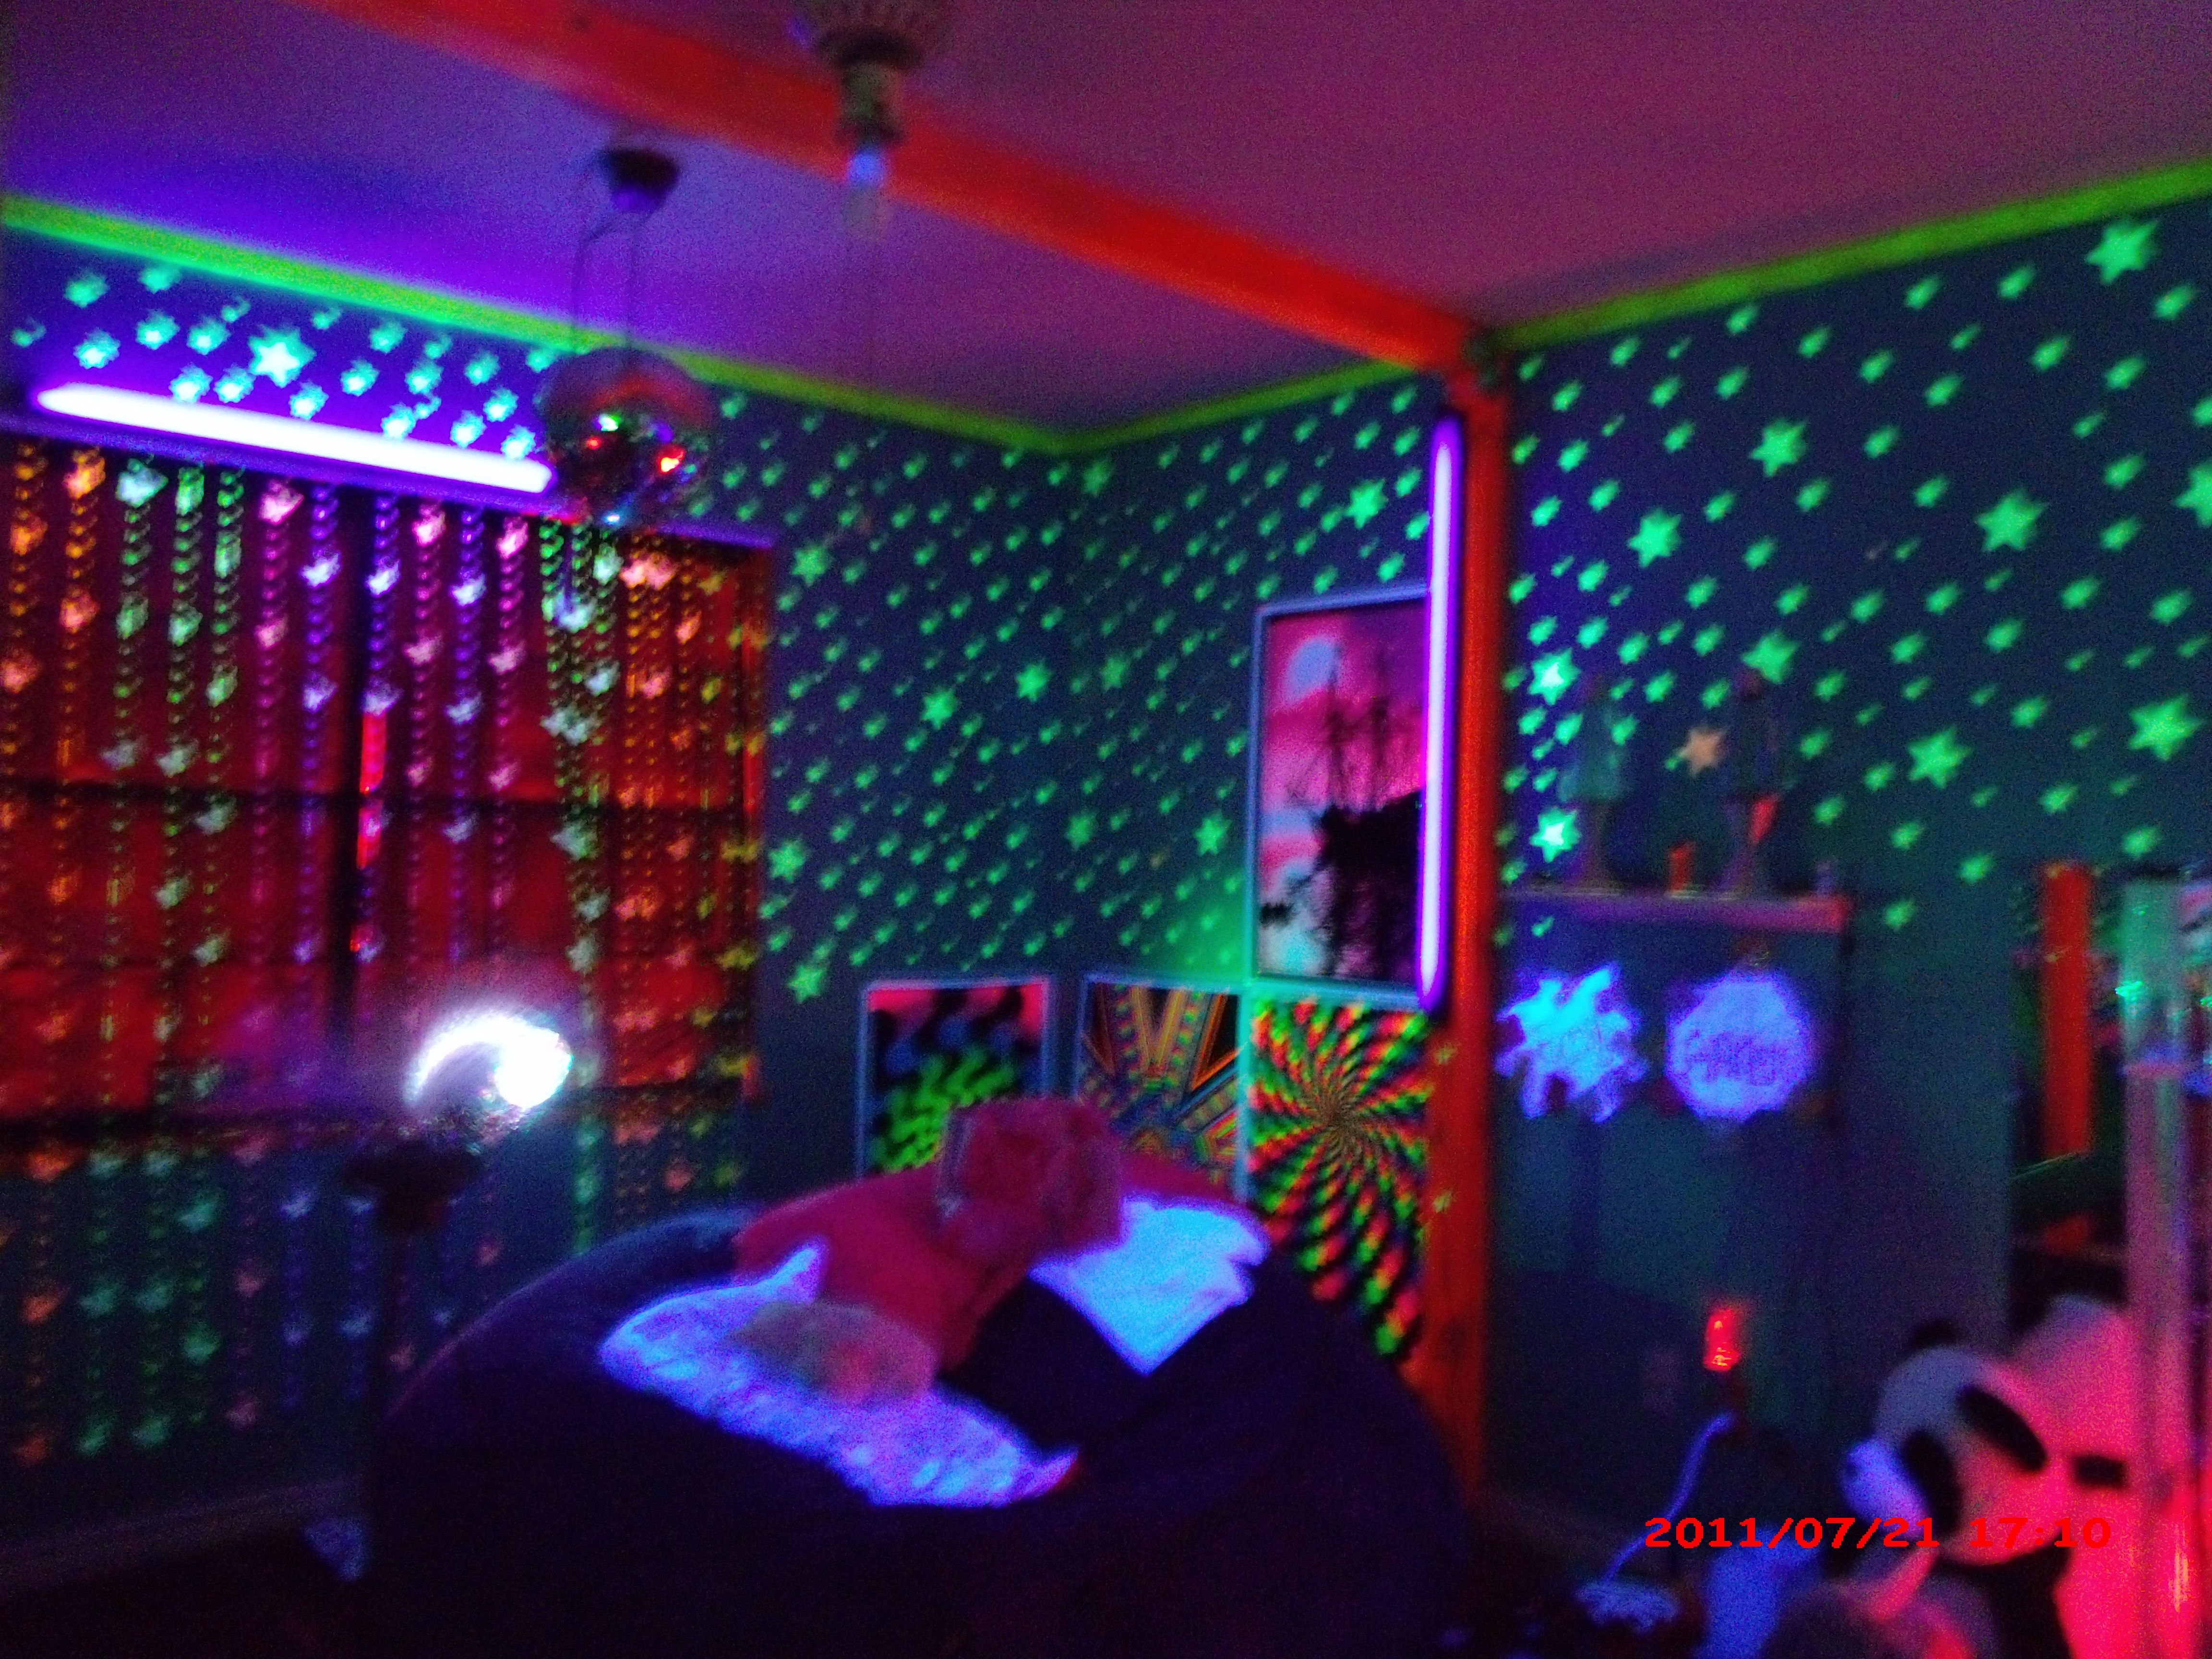 A Mother 39 S Home Sensory Room For Her Daughter I Thought